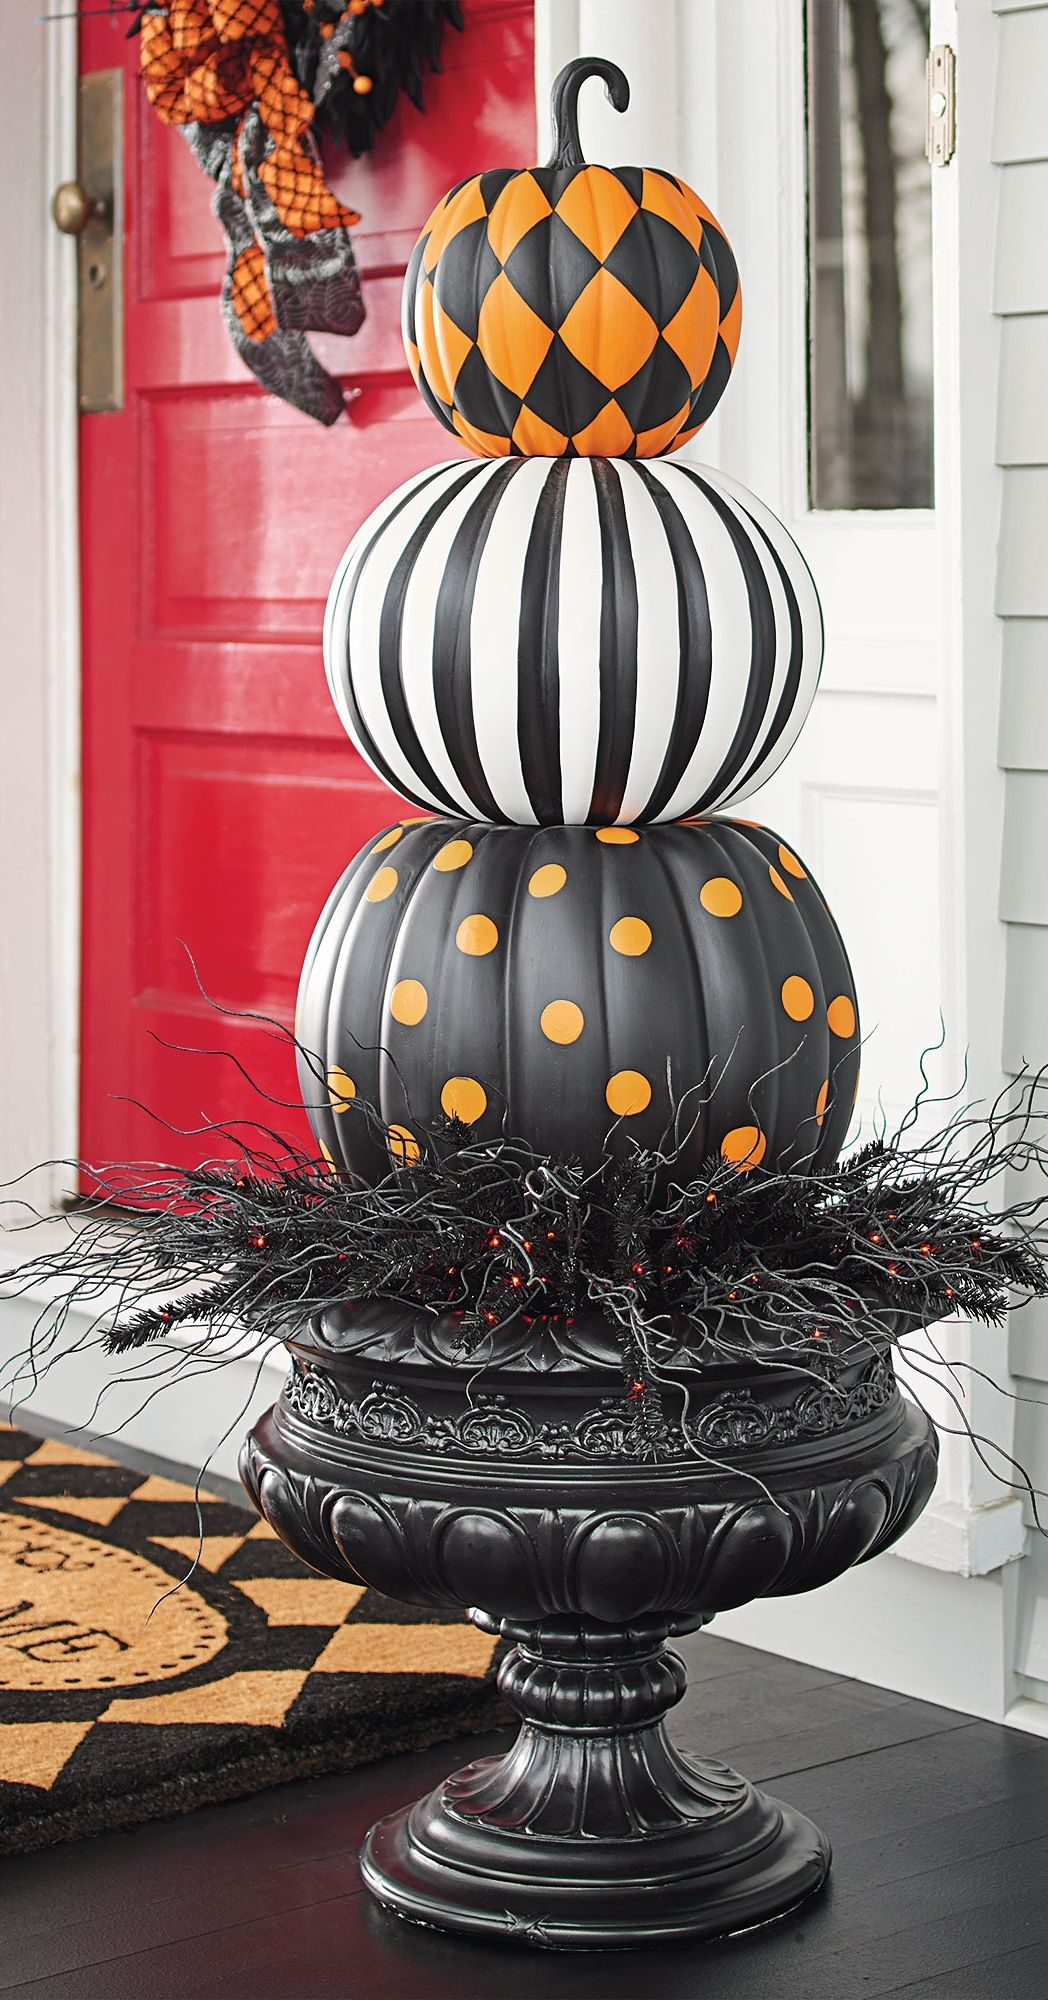 Put a designer spin on decorating with gourds. Our